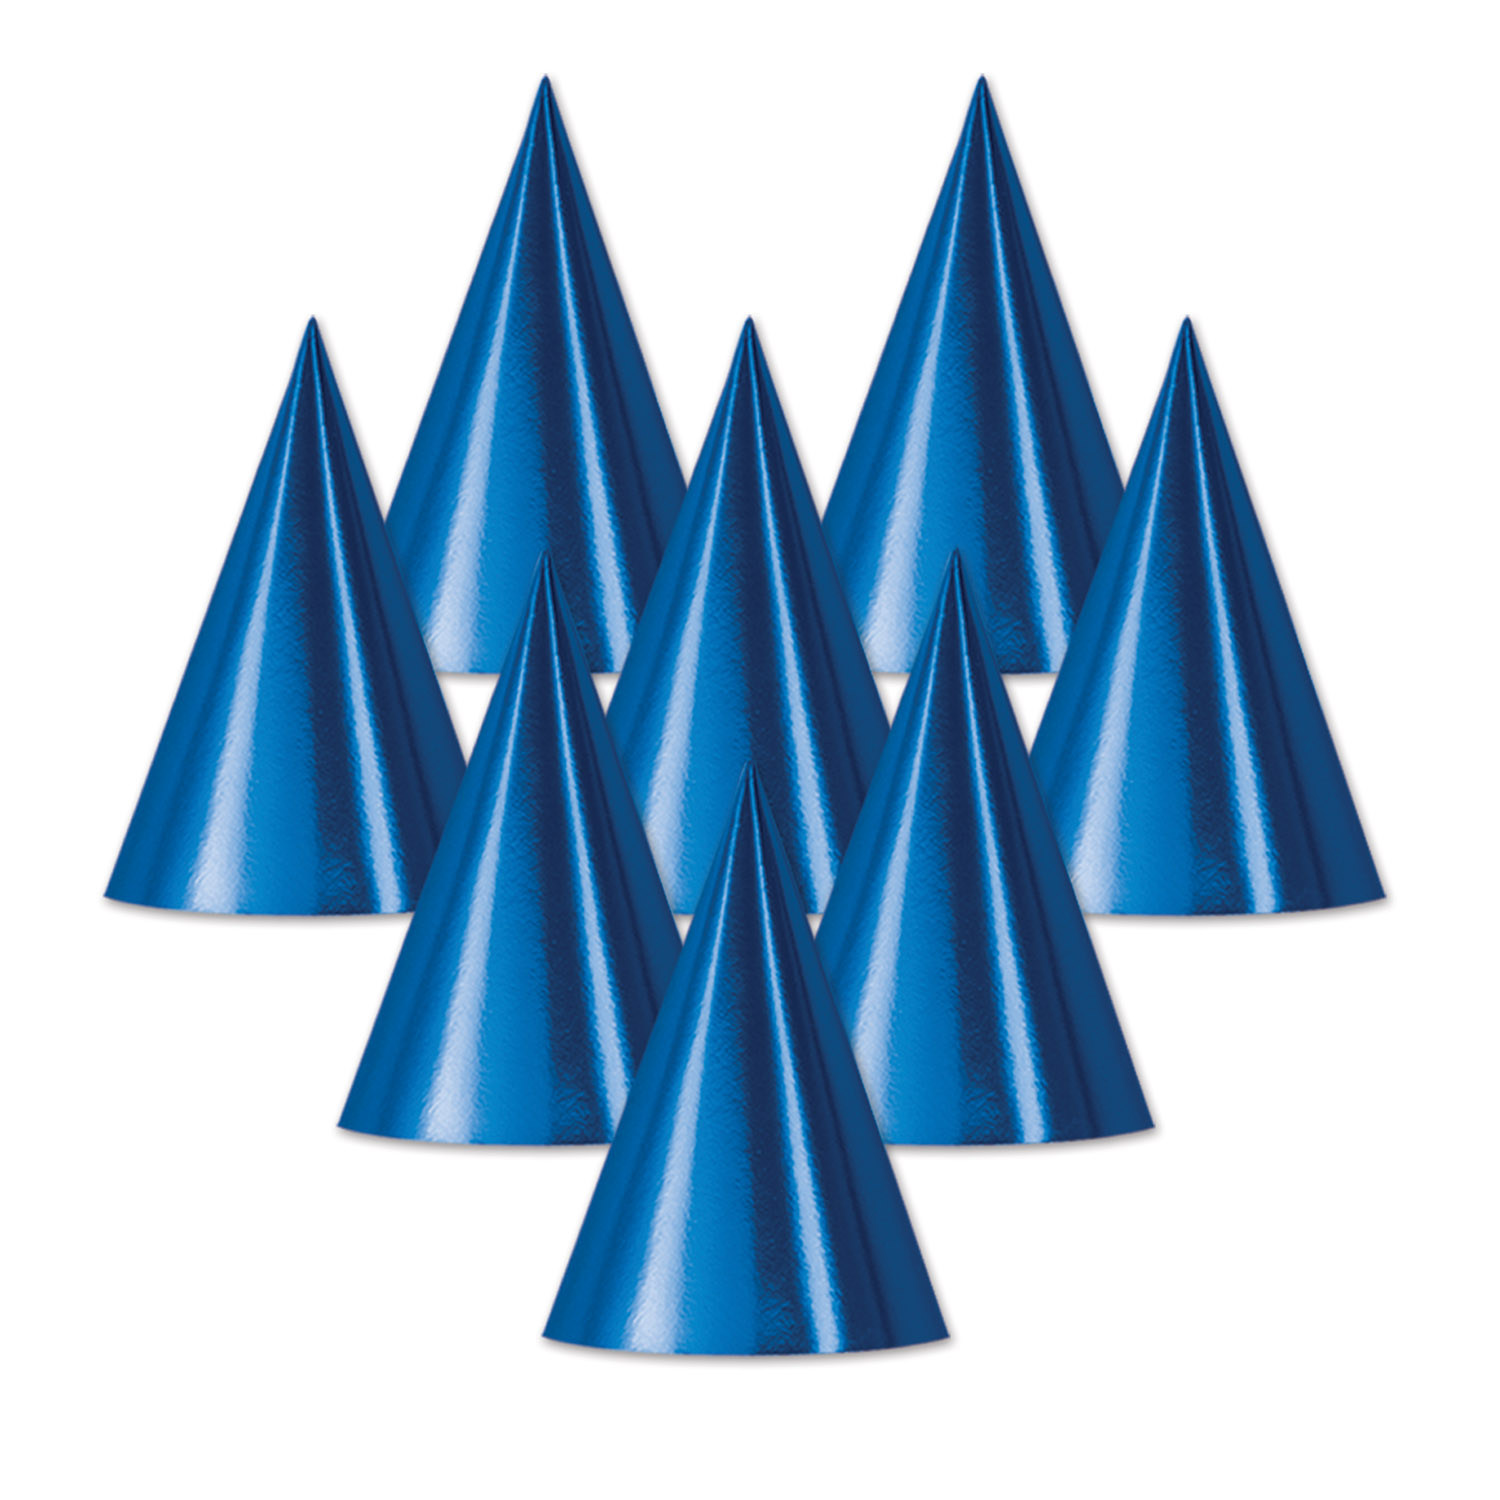 Foil Cone Hat (Pack of 48) Foil Cone Hat, Party Hat, Cone Hat, Inexpensive party hat, Wholesale decorations, Cheap favors, blue paper hats, Birthday ideas, New Years Eve, Every day hats